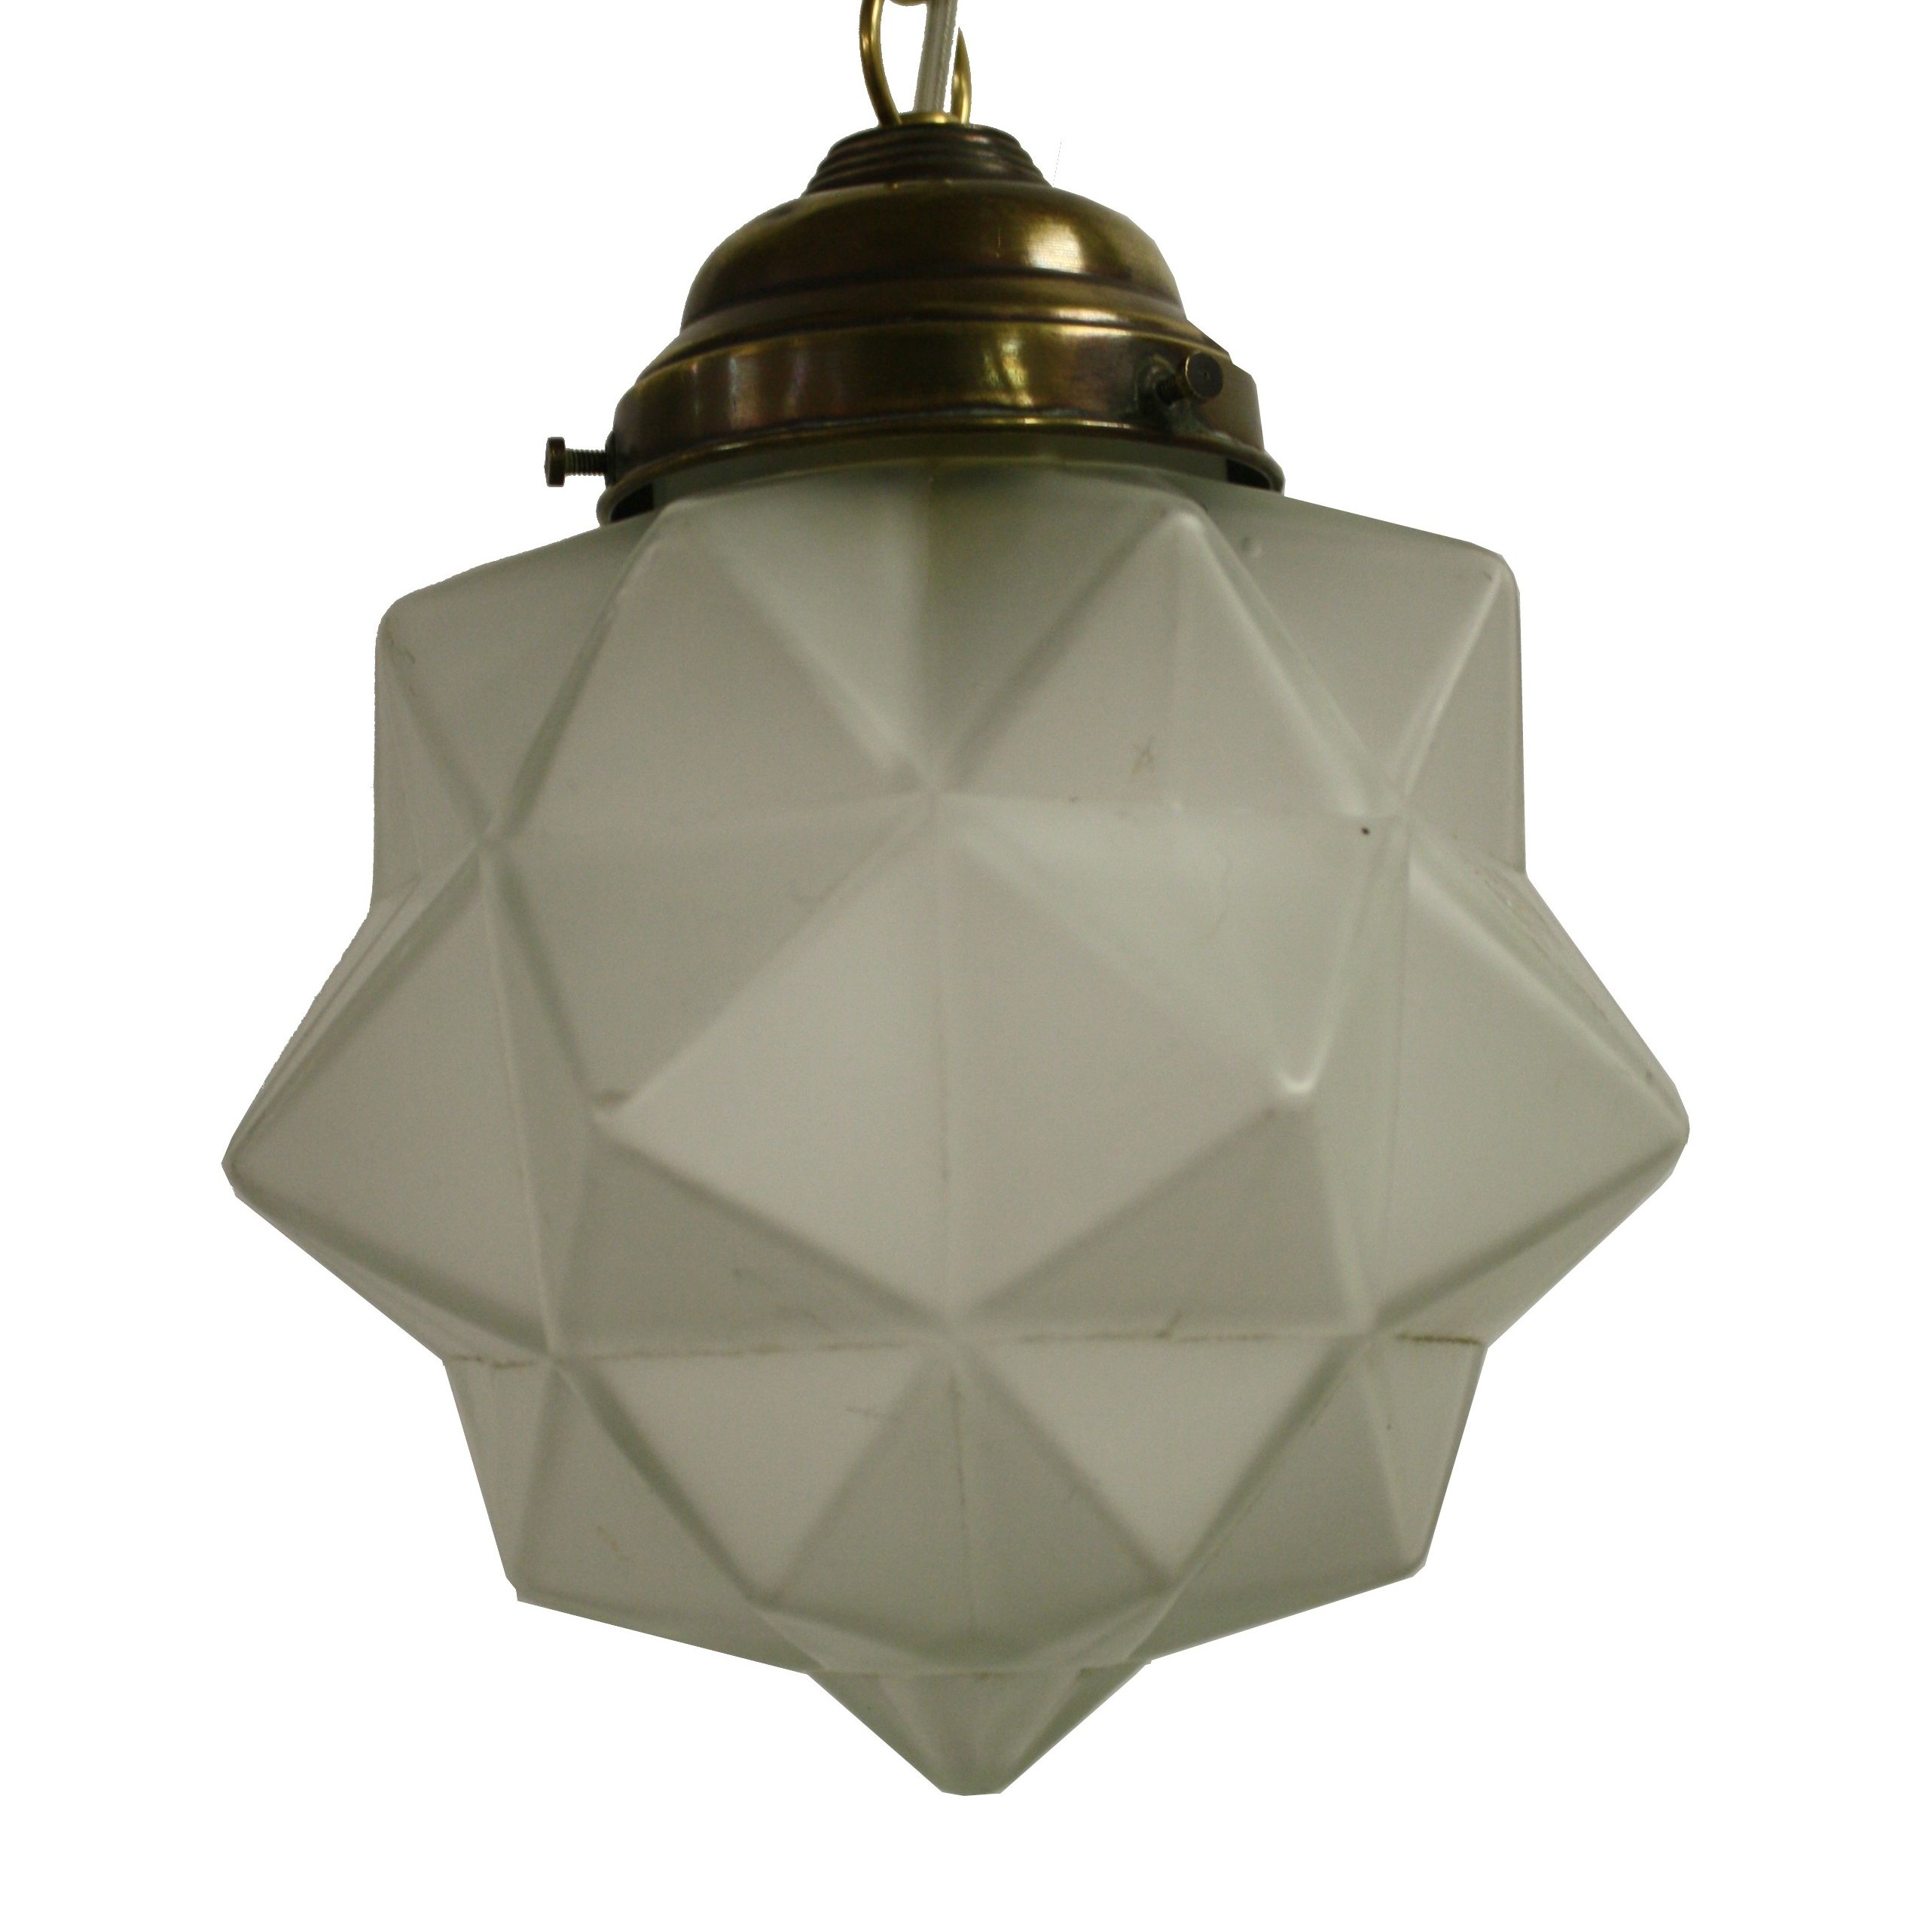 Small Art Deco Starburst Pendant Light 1930s